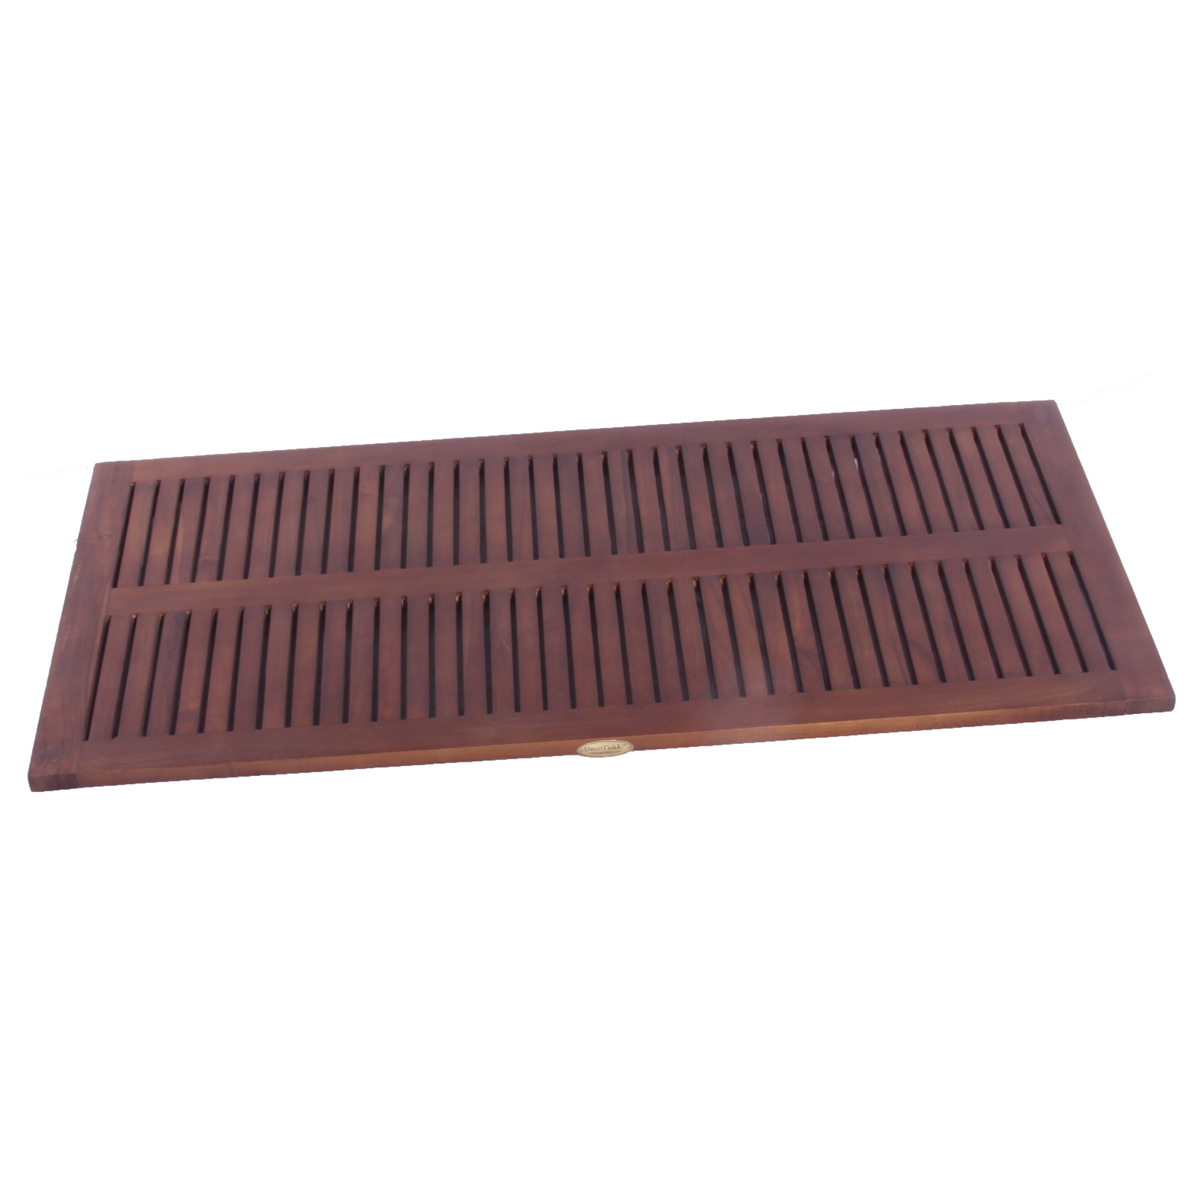 "DT135 40"" x 20"" Classic Teak Spa Shower and Floor Large Mat"